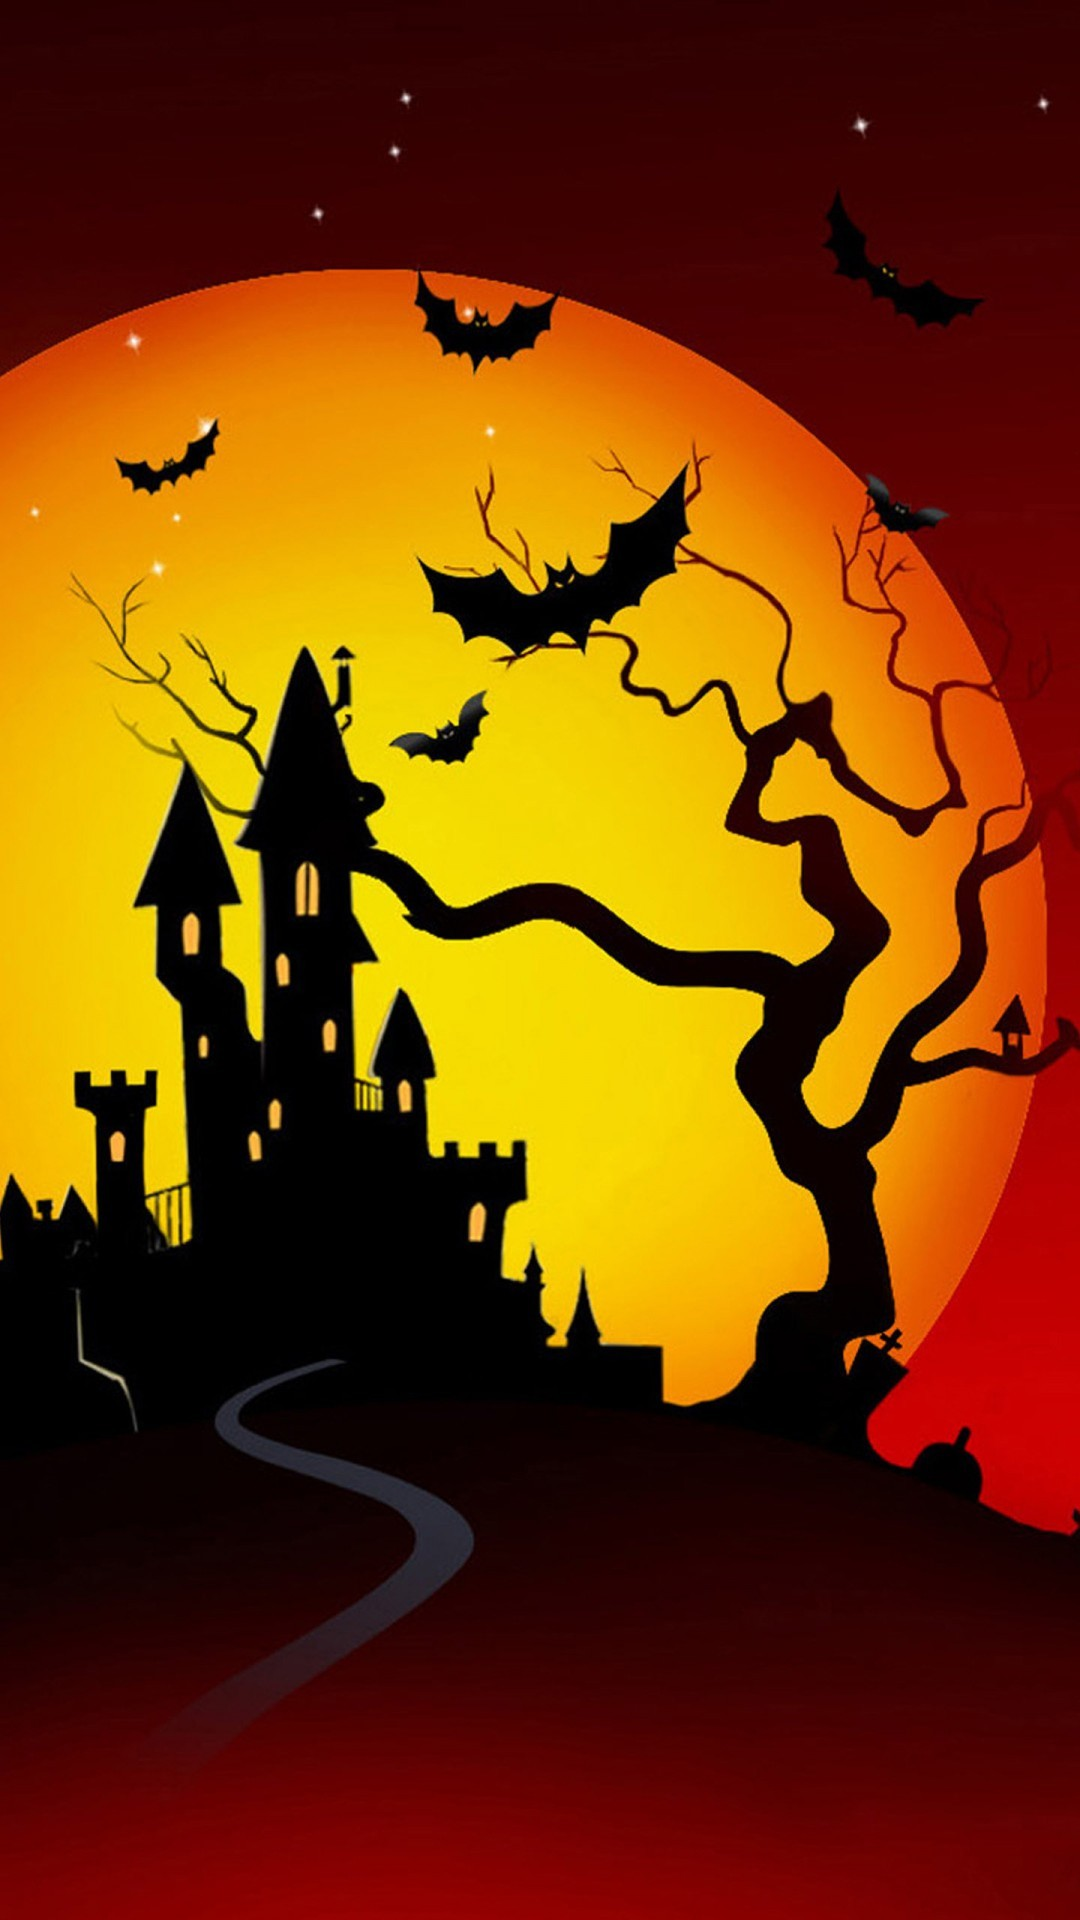 Popular Wallpaper Halloween Lock Screen - halloween-bats-and-castle-wallpaper-background-1080x1920  Perfect Image Reference_995661.jpg